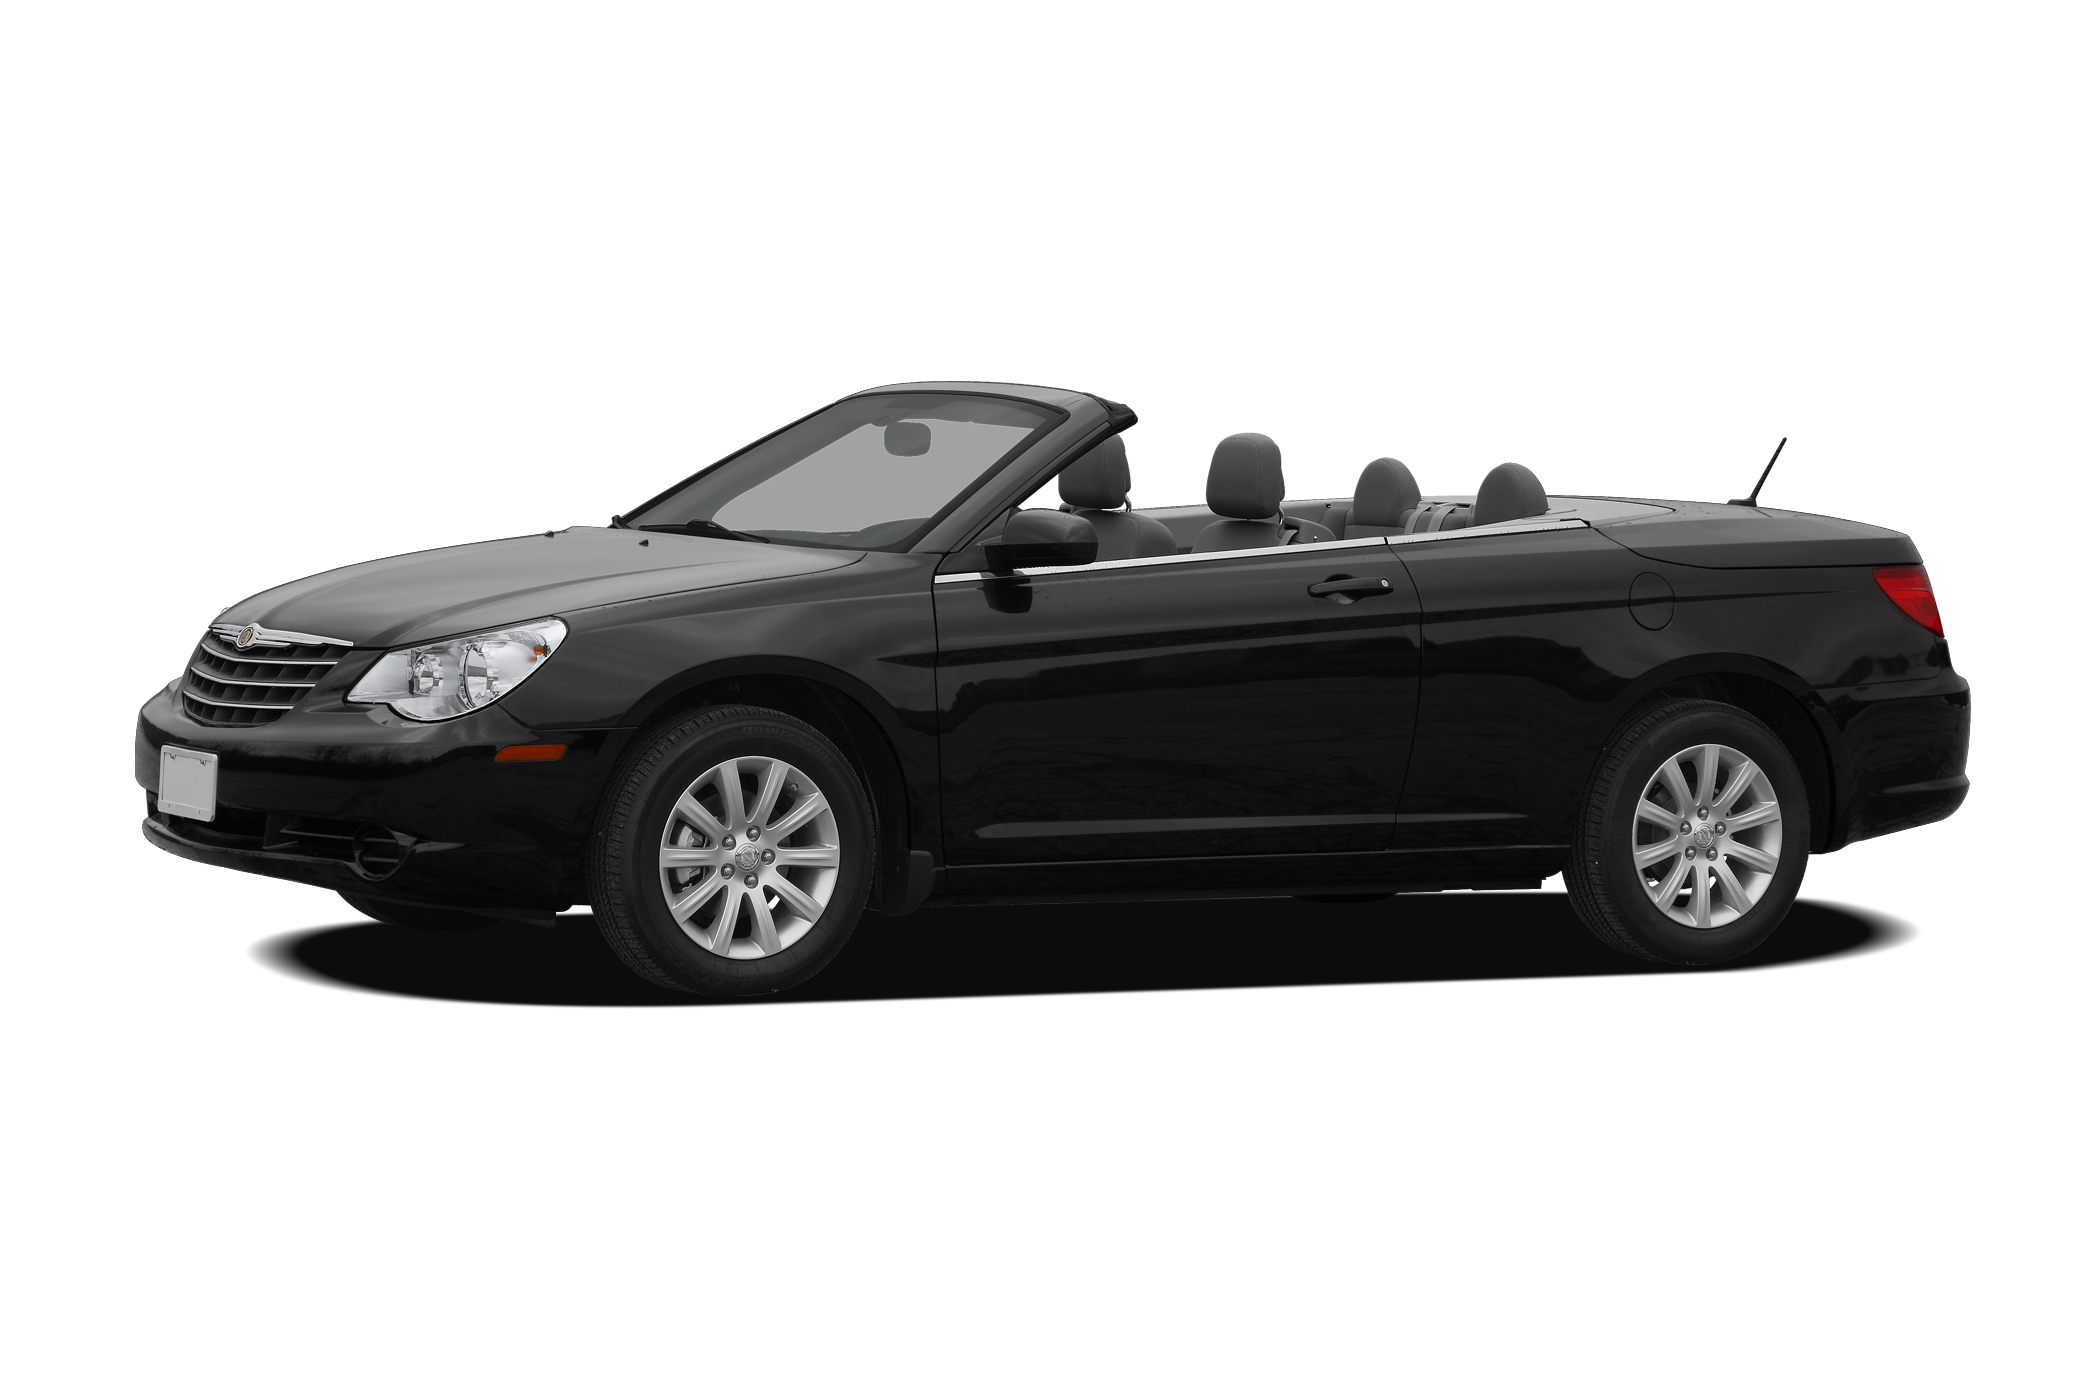 2010 Chrysler Sebring Touring Lifetime Engine Warranty at NO CHARGE on all pre-owned vehicles Cour